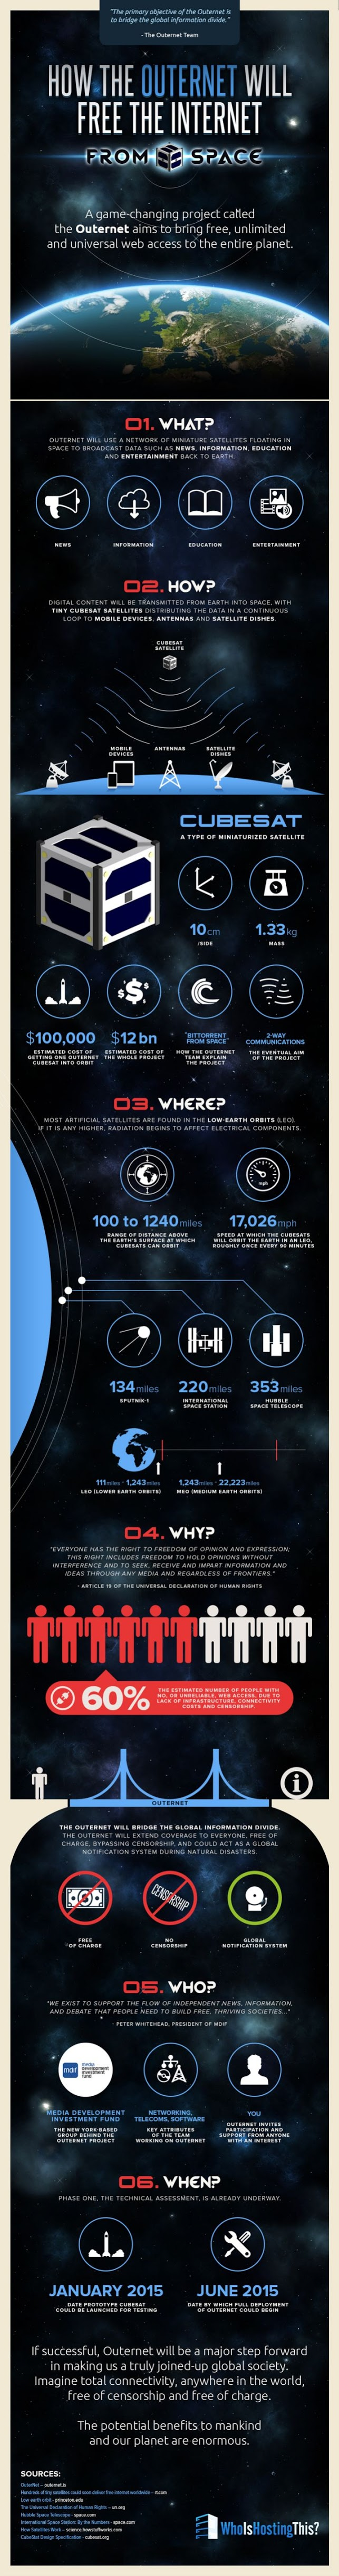 The What, How, Where, Why, Who, When of The Outernet - infographic